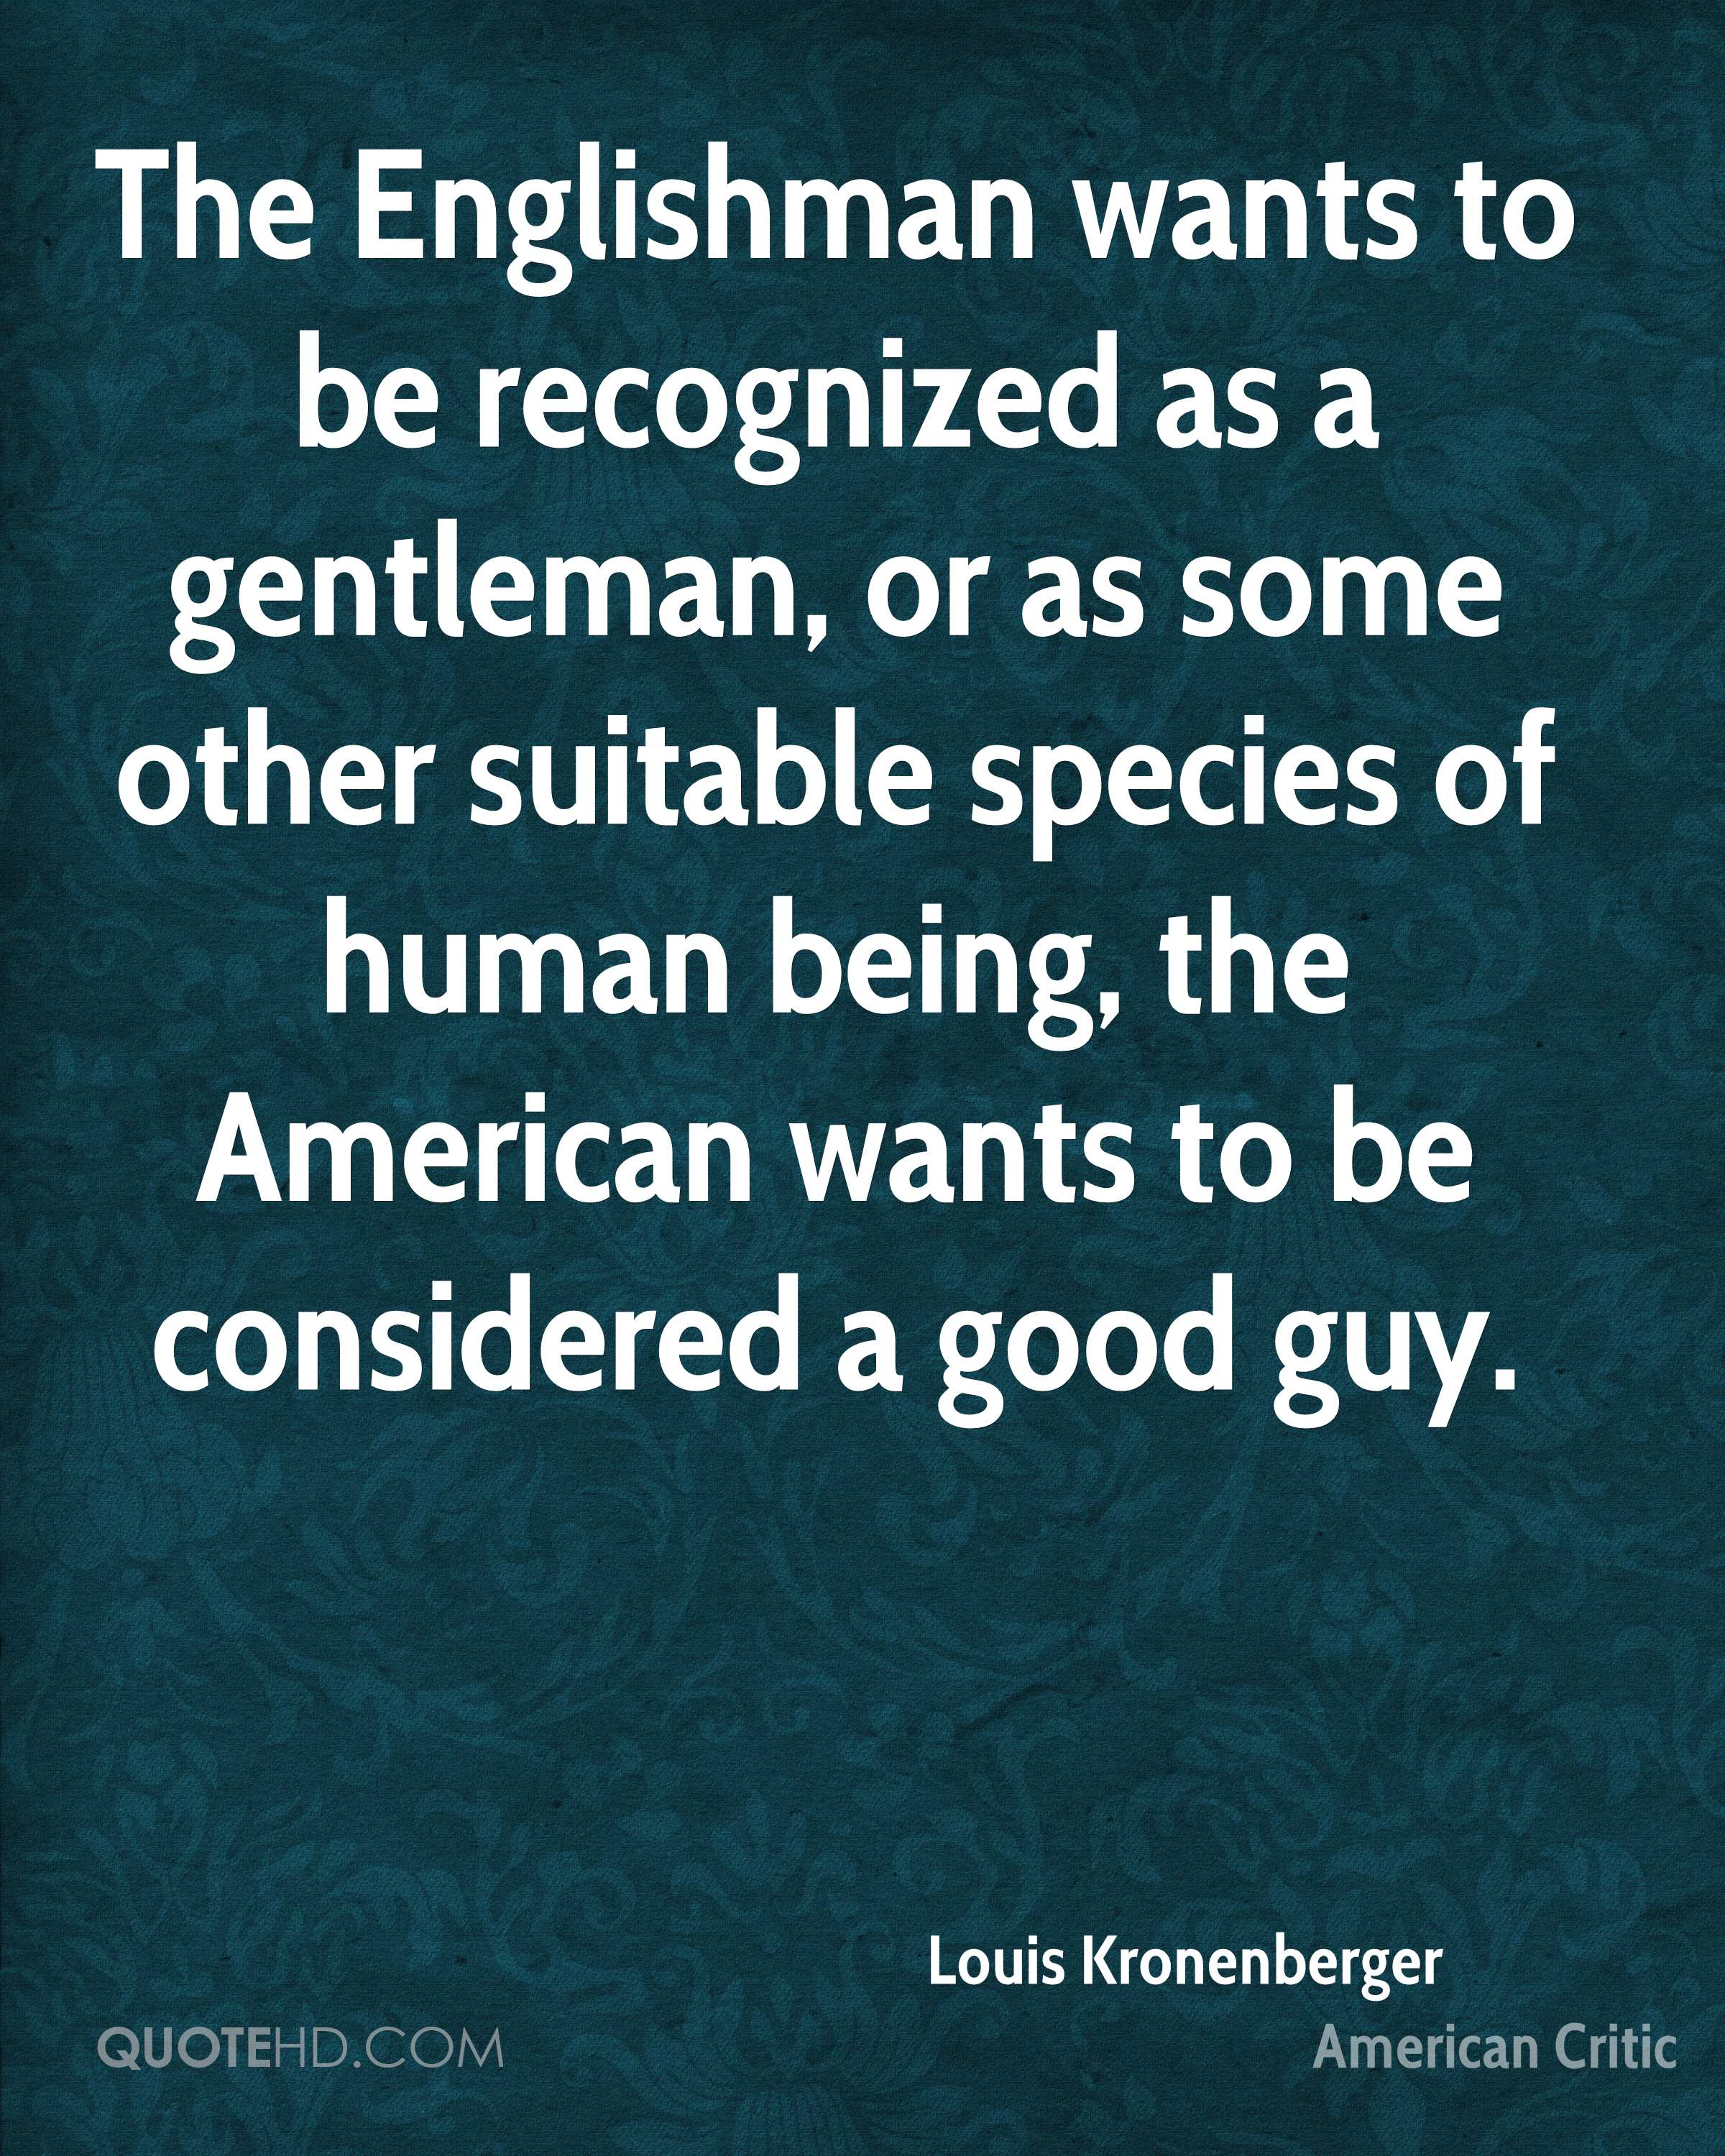 The Englishman wants to be recognized as a gentleman, or as some other suitable species of human being, the American wants to be considered a good guy.